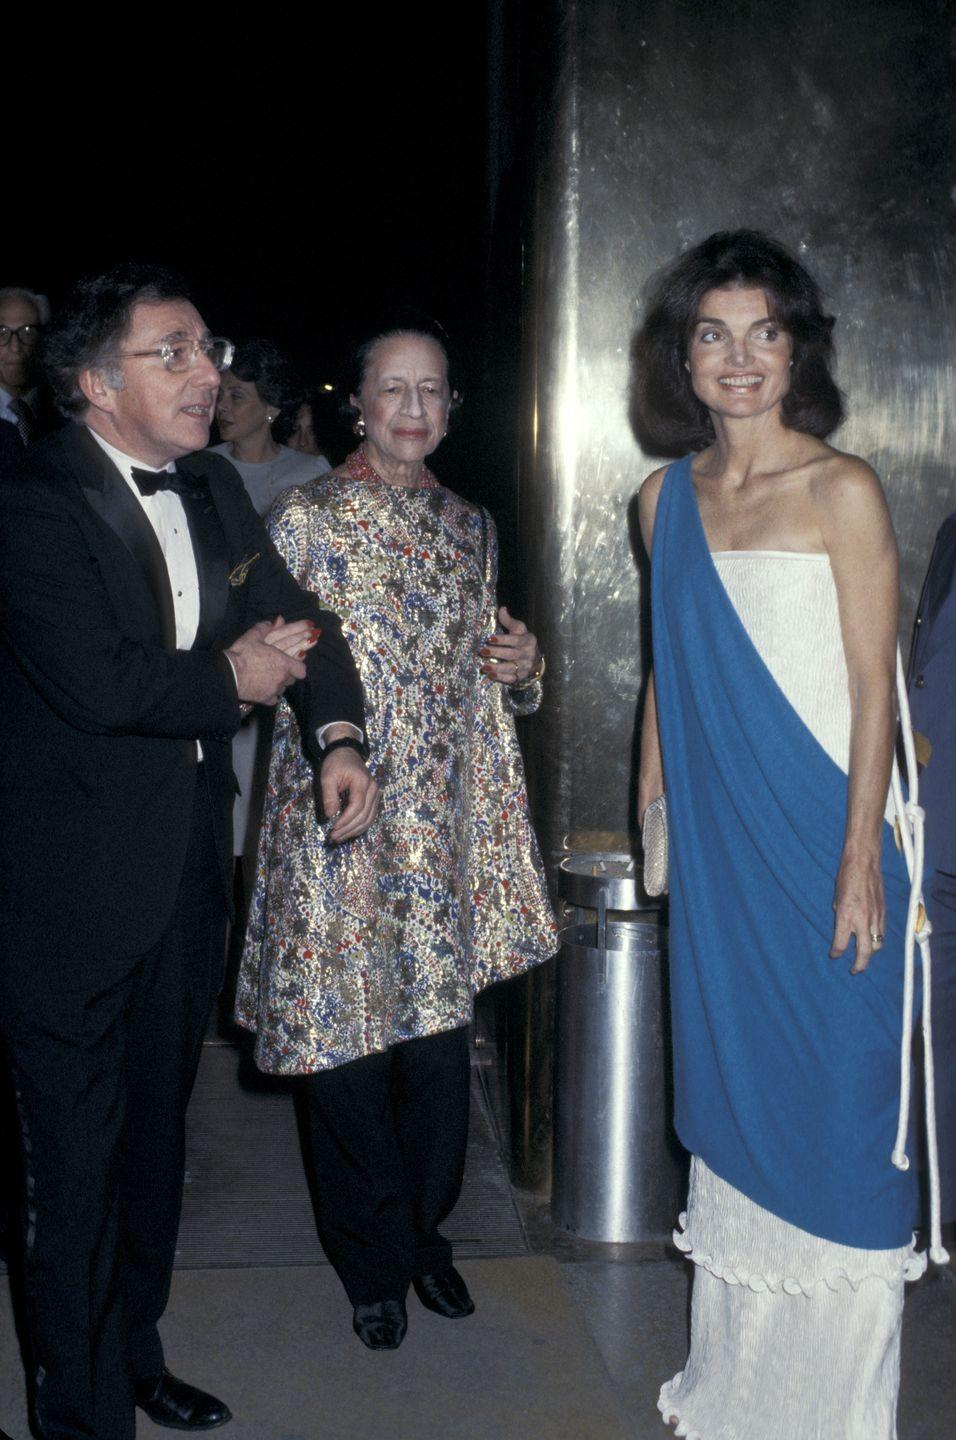 <p>Carl Katz, Diana Vreeland, and Jackie Onassis are photographed at the Metropolitan Museum of Art, with Jackie wearing a strapless white gown with a blue overlay. <br></p>